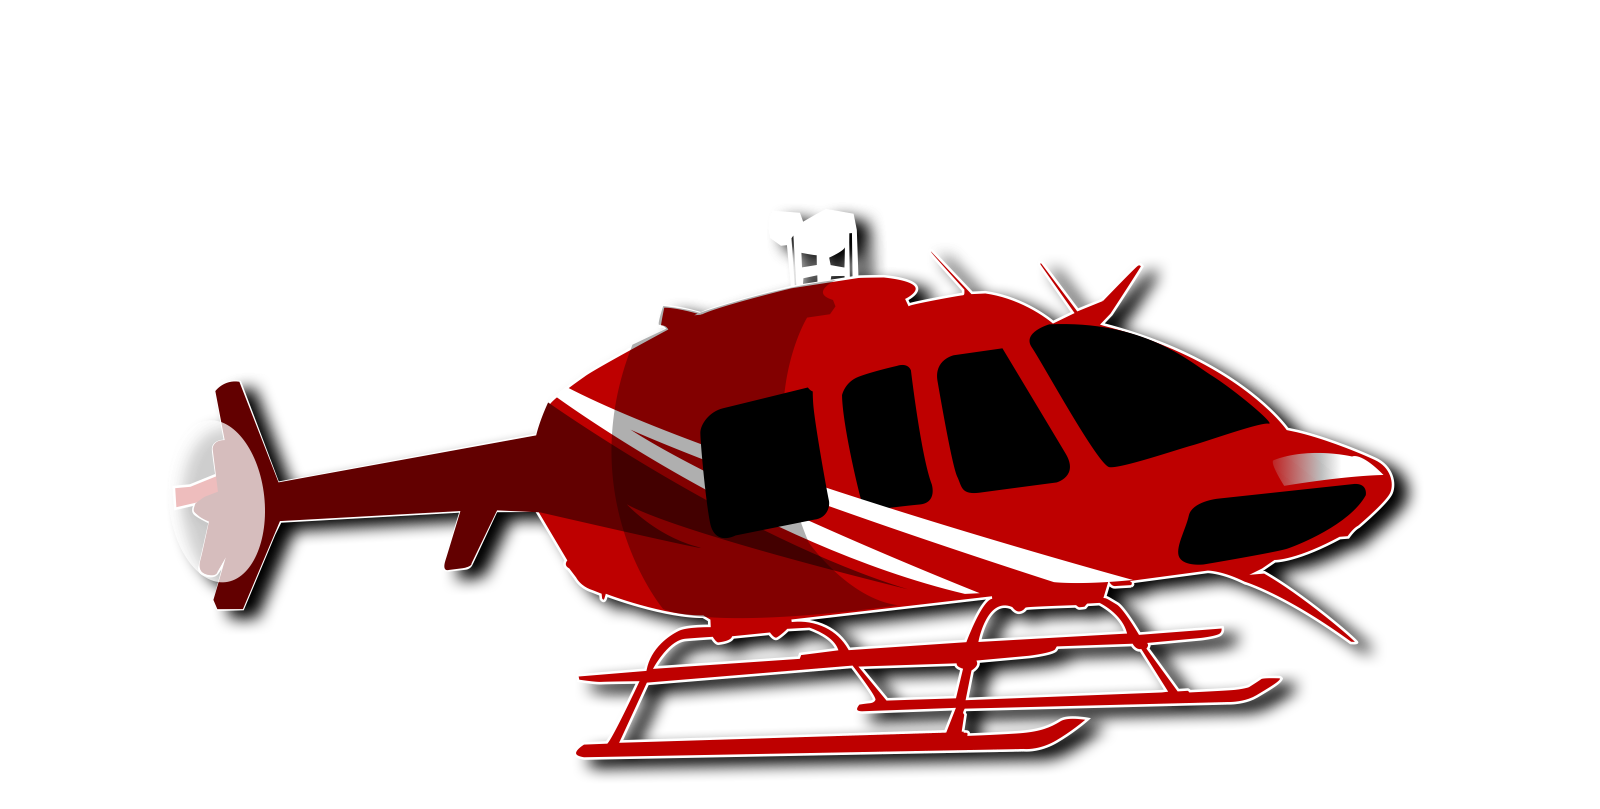 Booking image is not. Helicopter clipart top view